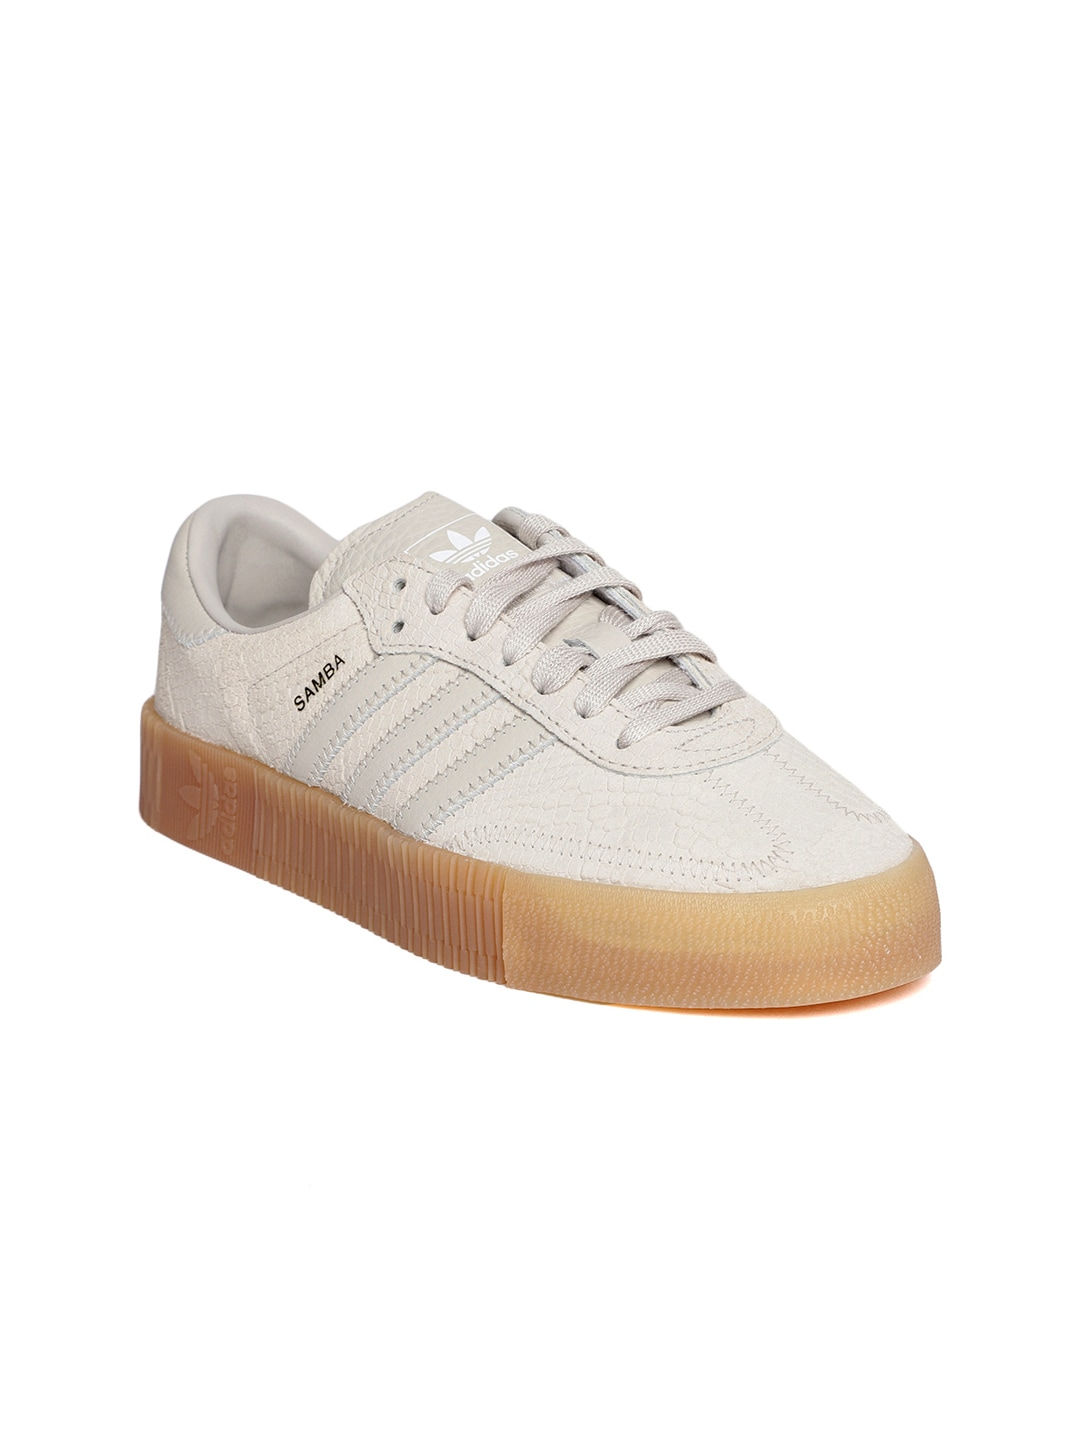 34e50c40e19a Adidas Suede Shoes - Buy Adidas Suede Shoes online in India